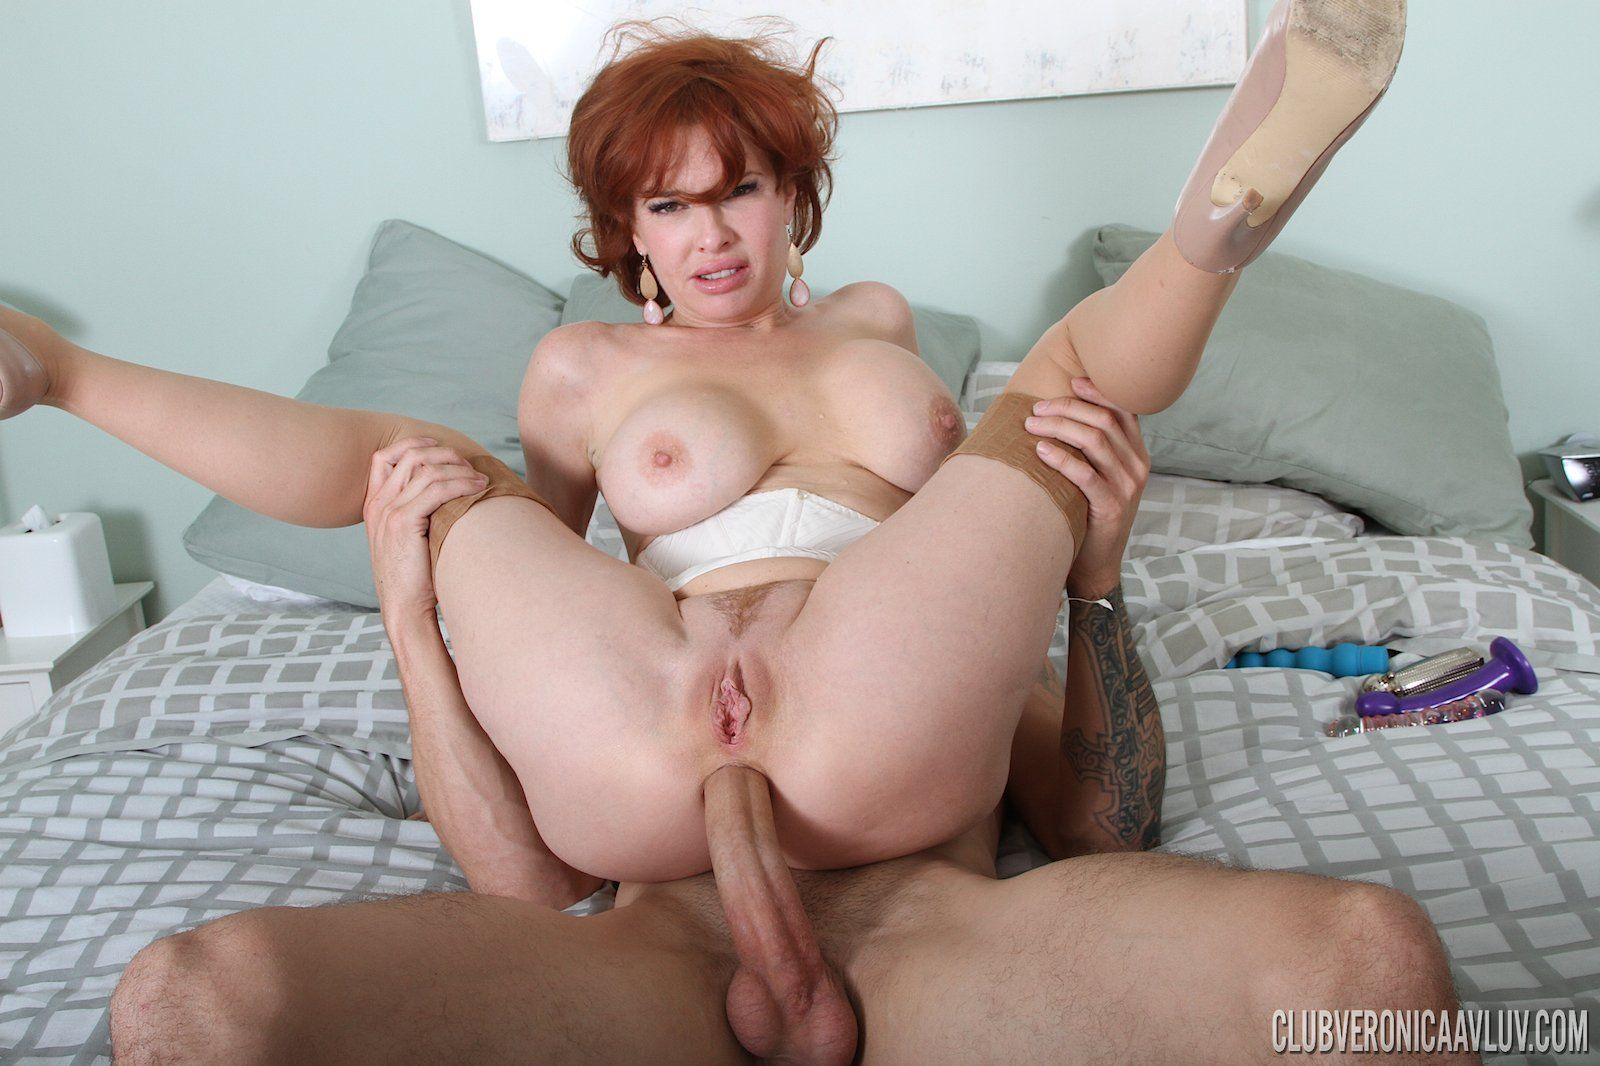 simply remarkable shemale asian masturbate dick outdoor not leave!